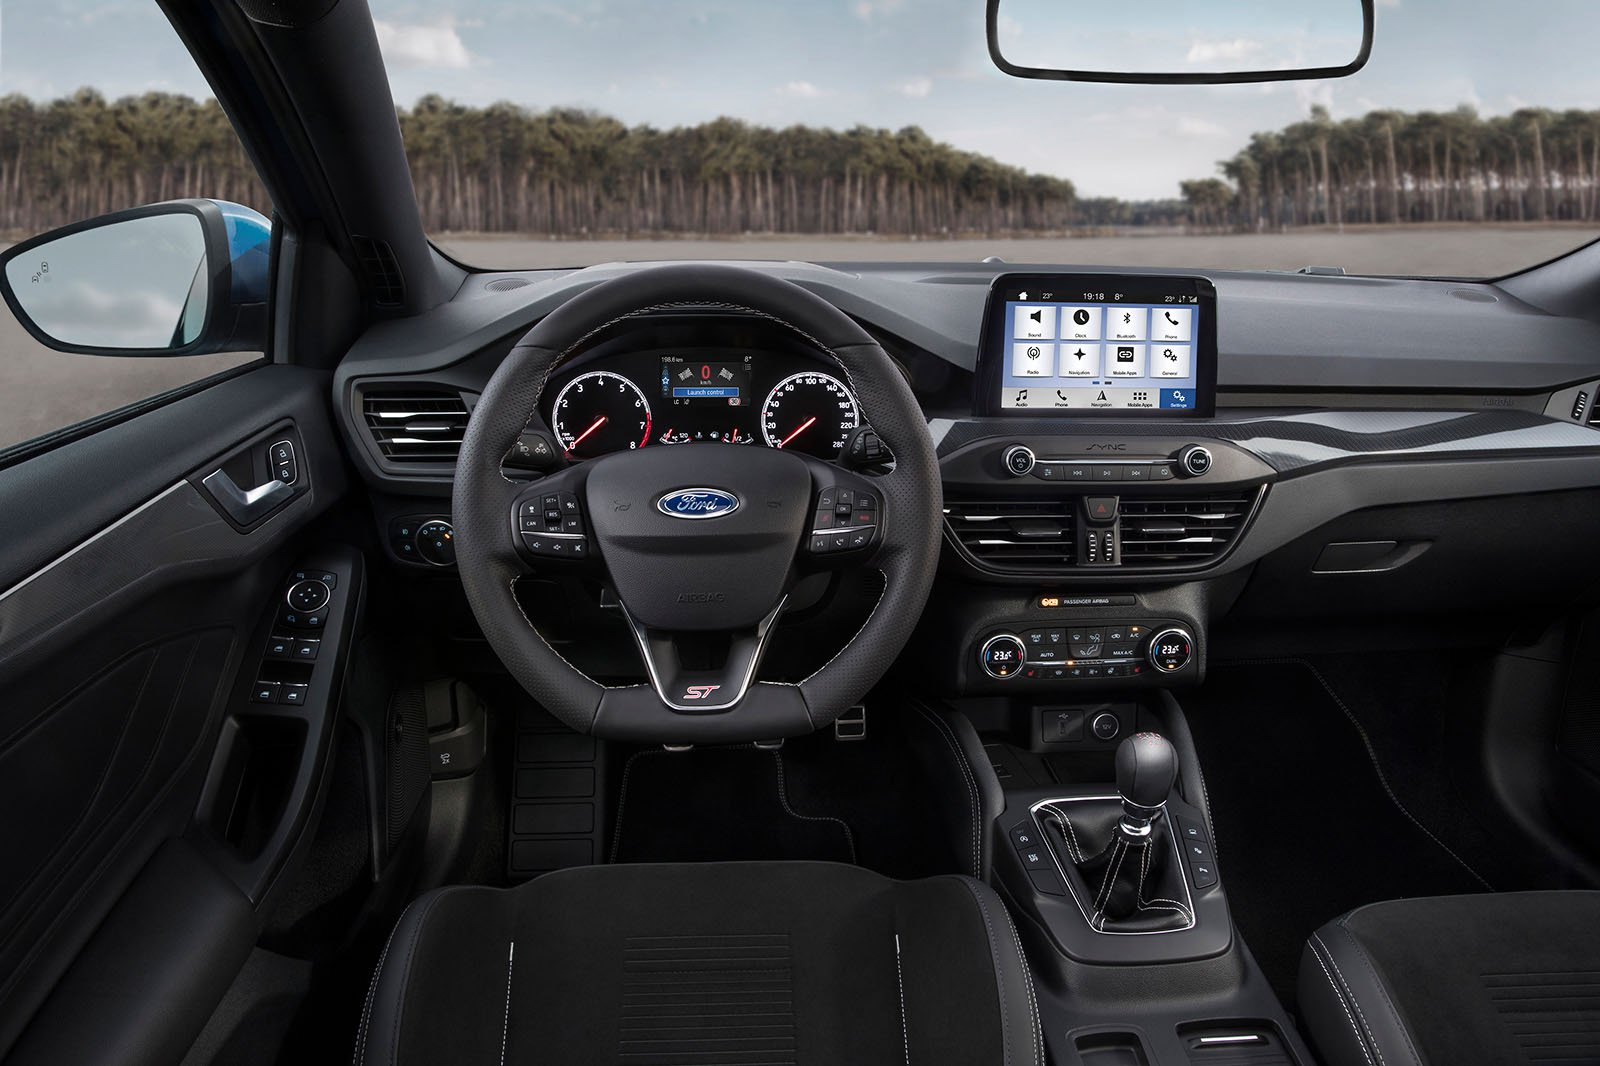 2019 Ford Focus ST - dashboard